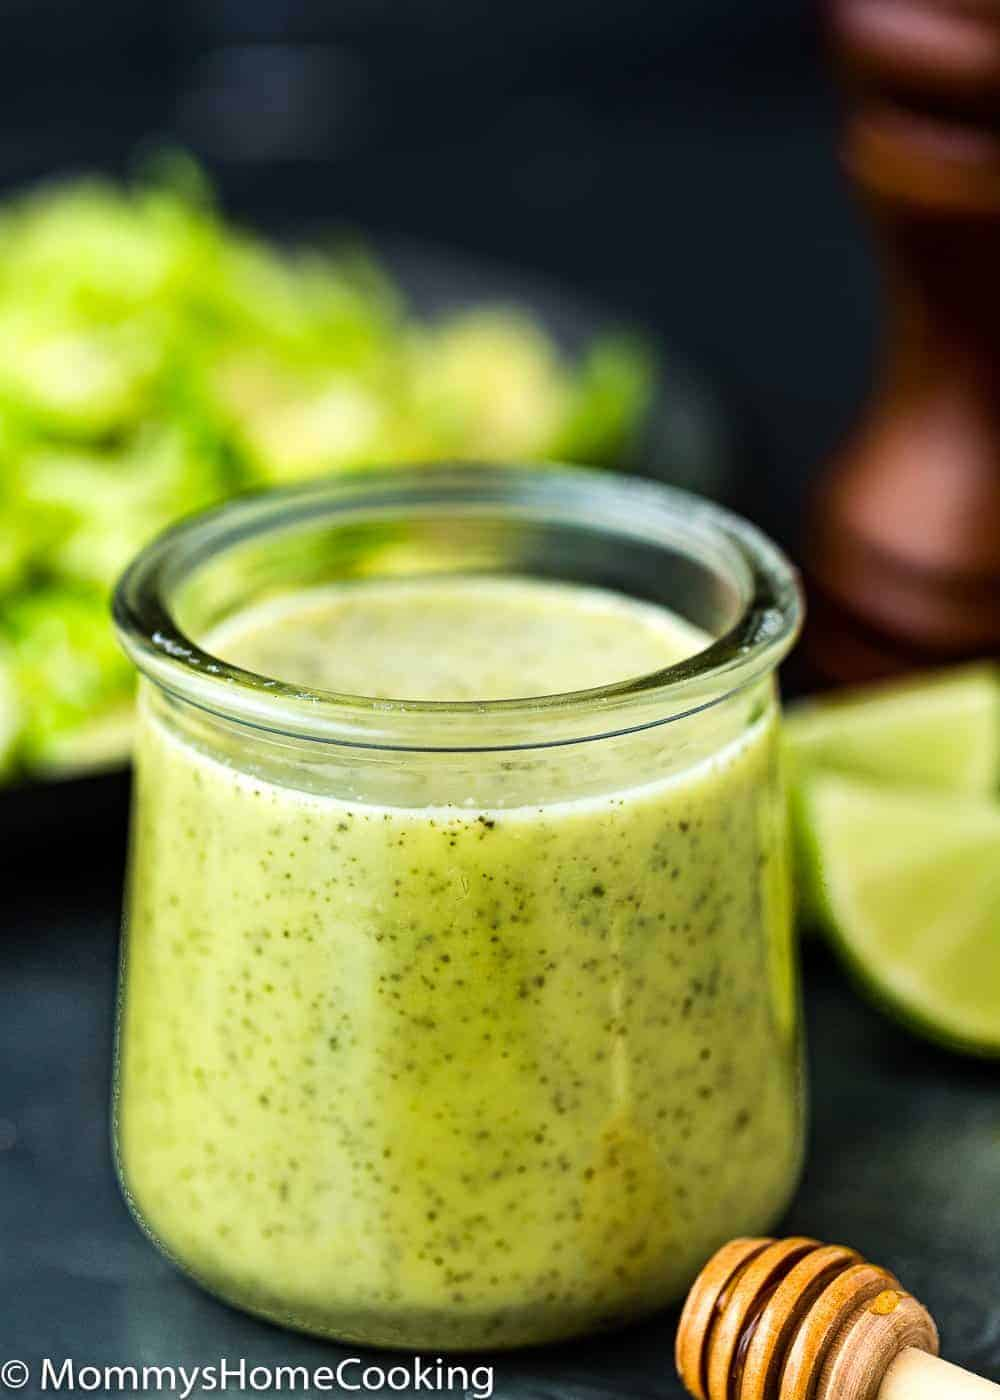 Green Onion Vinaigrette in a glass container